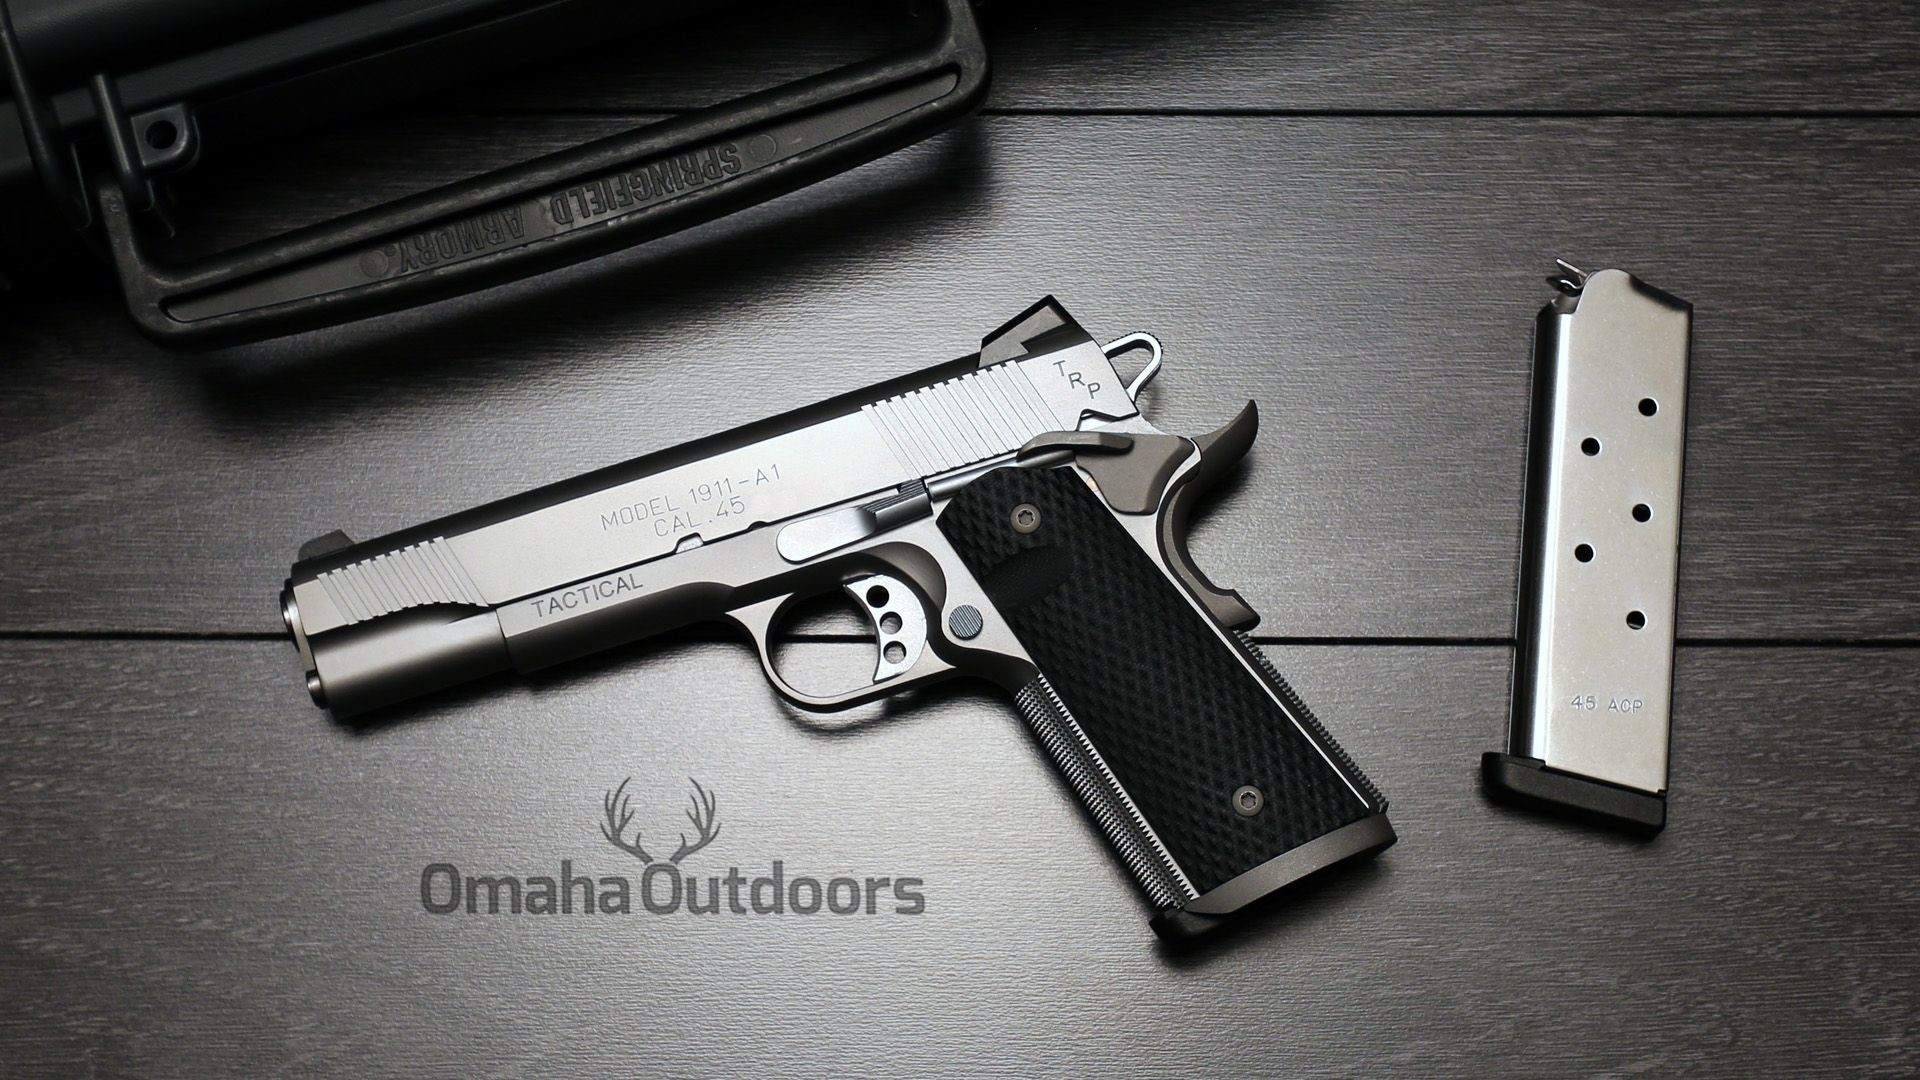 1920x1080 Springfield Armory 1911 Pistol Wallpapers 11